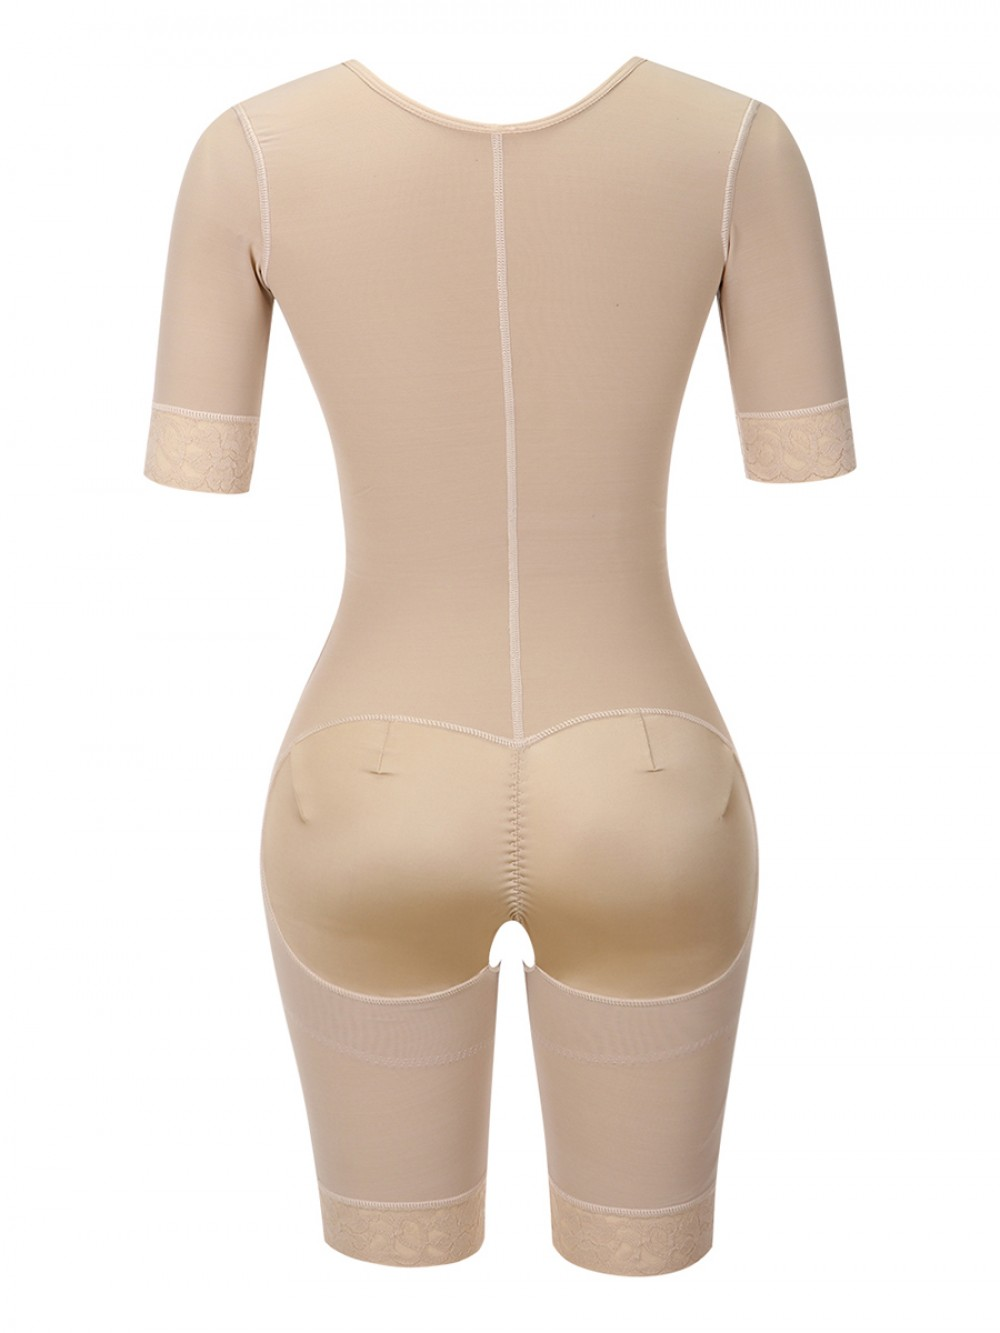 Post Surgery Skin Color Lace Full Body Shaper Zipper Open Crotch Curve Shaping